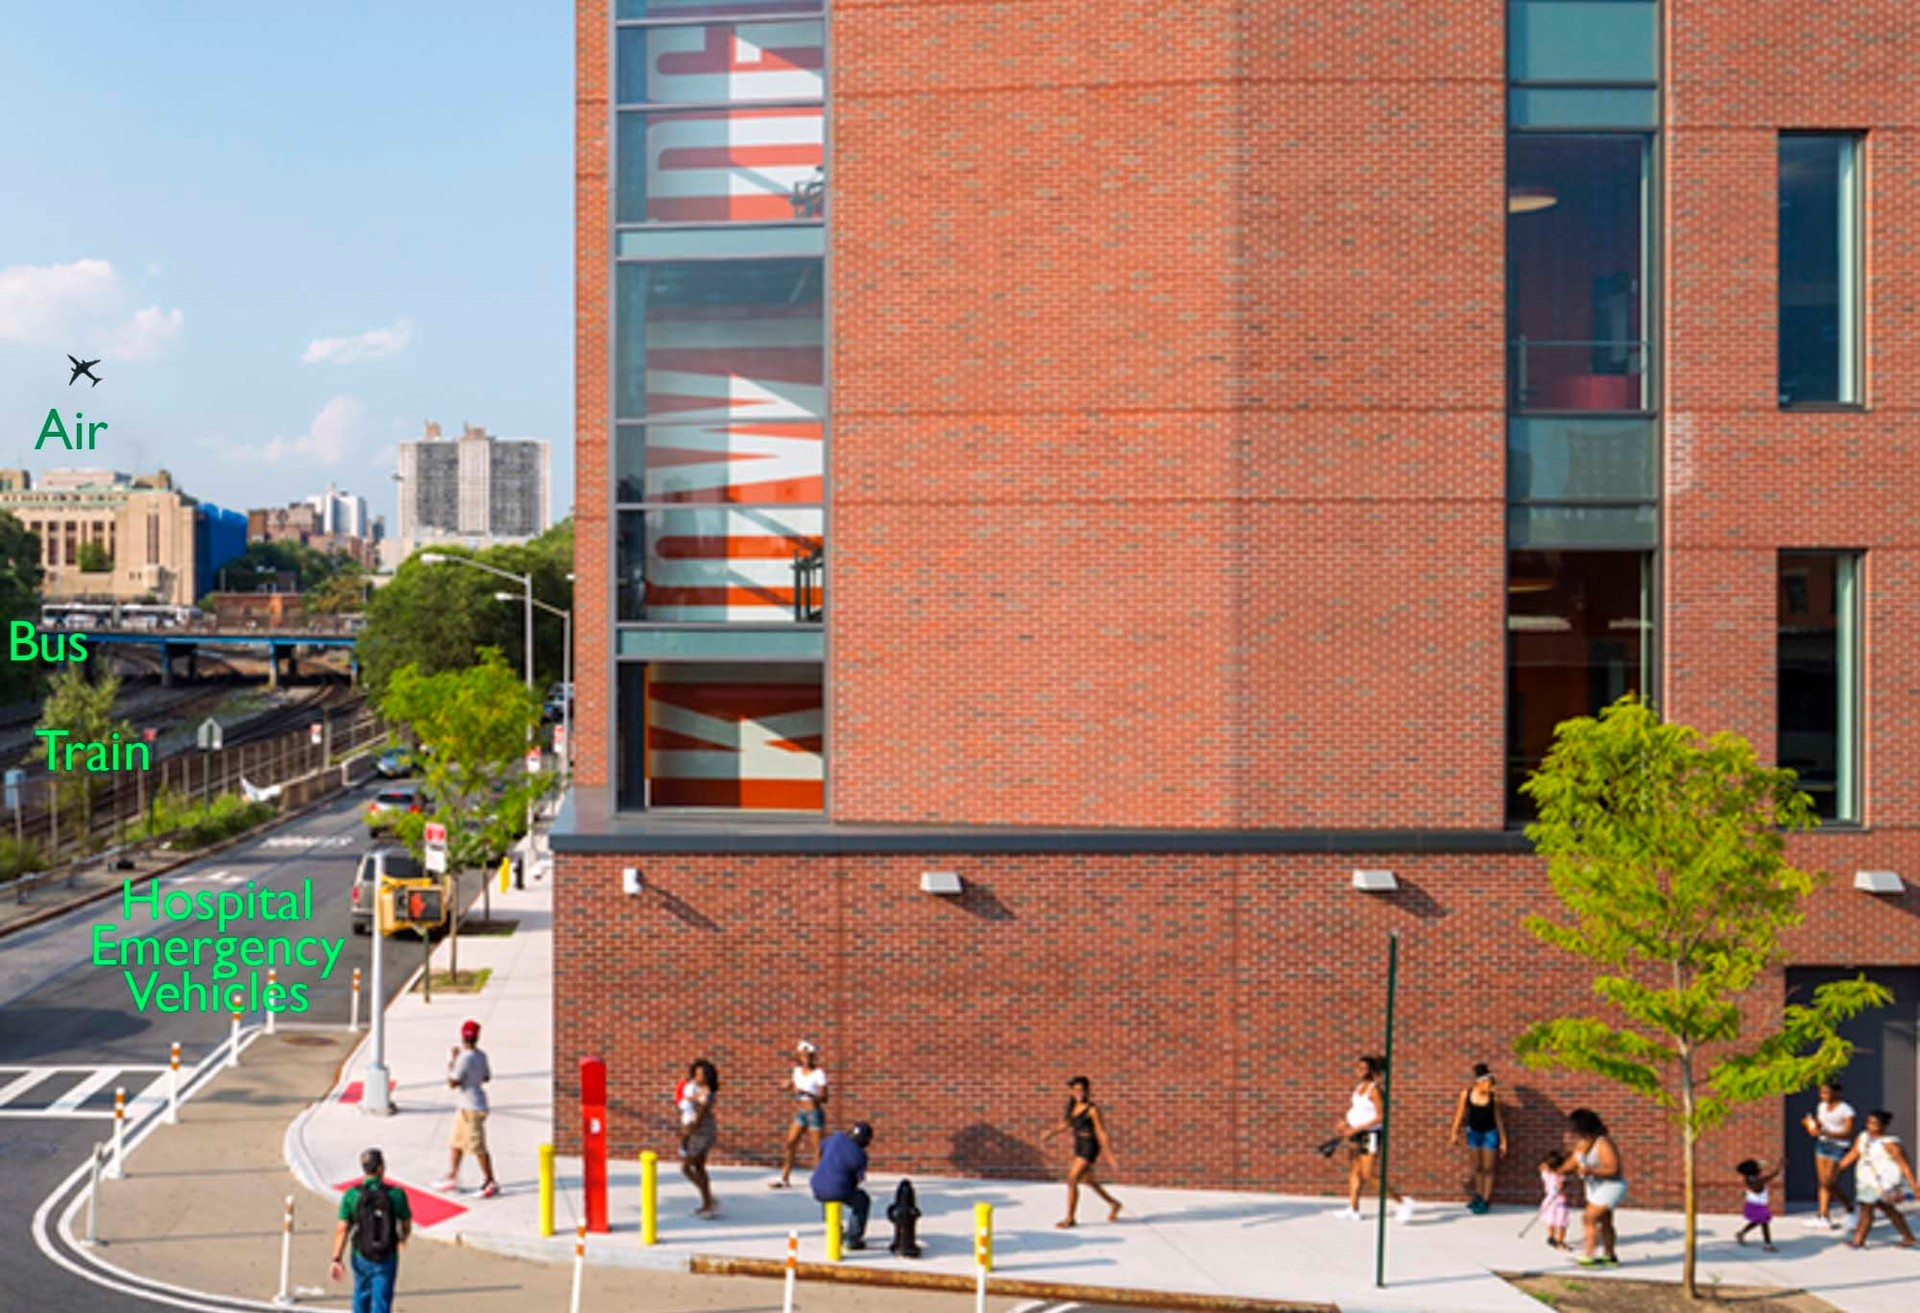 The KIPP Charter School utilizes 167 fixed triple glazed windows to help create an excellent learning environment by keeping New York City's urban noise out.